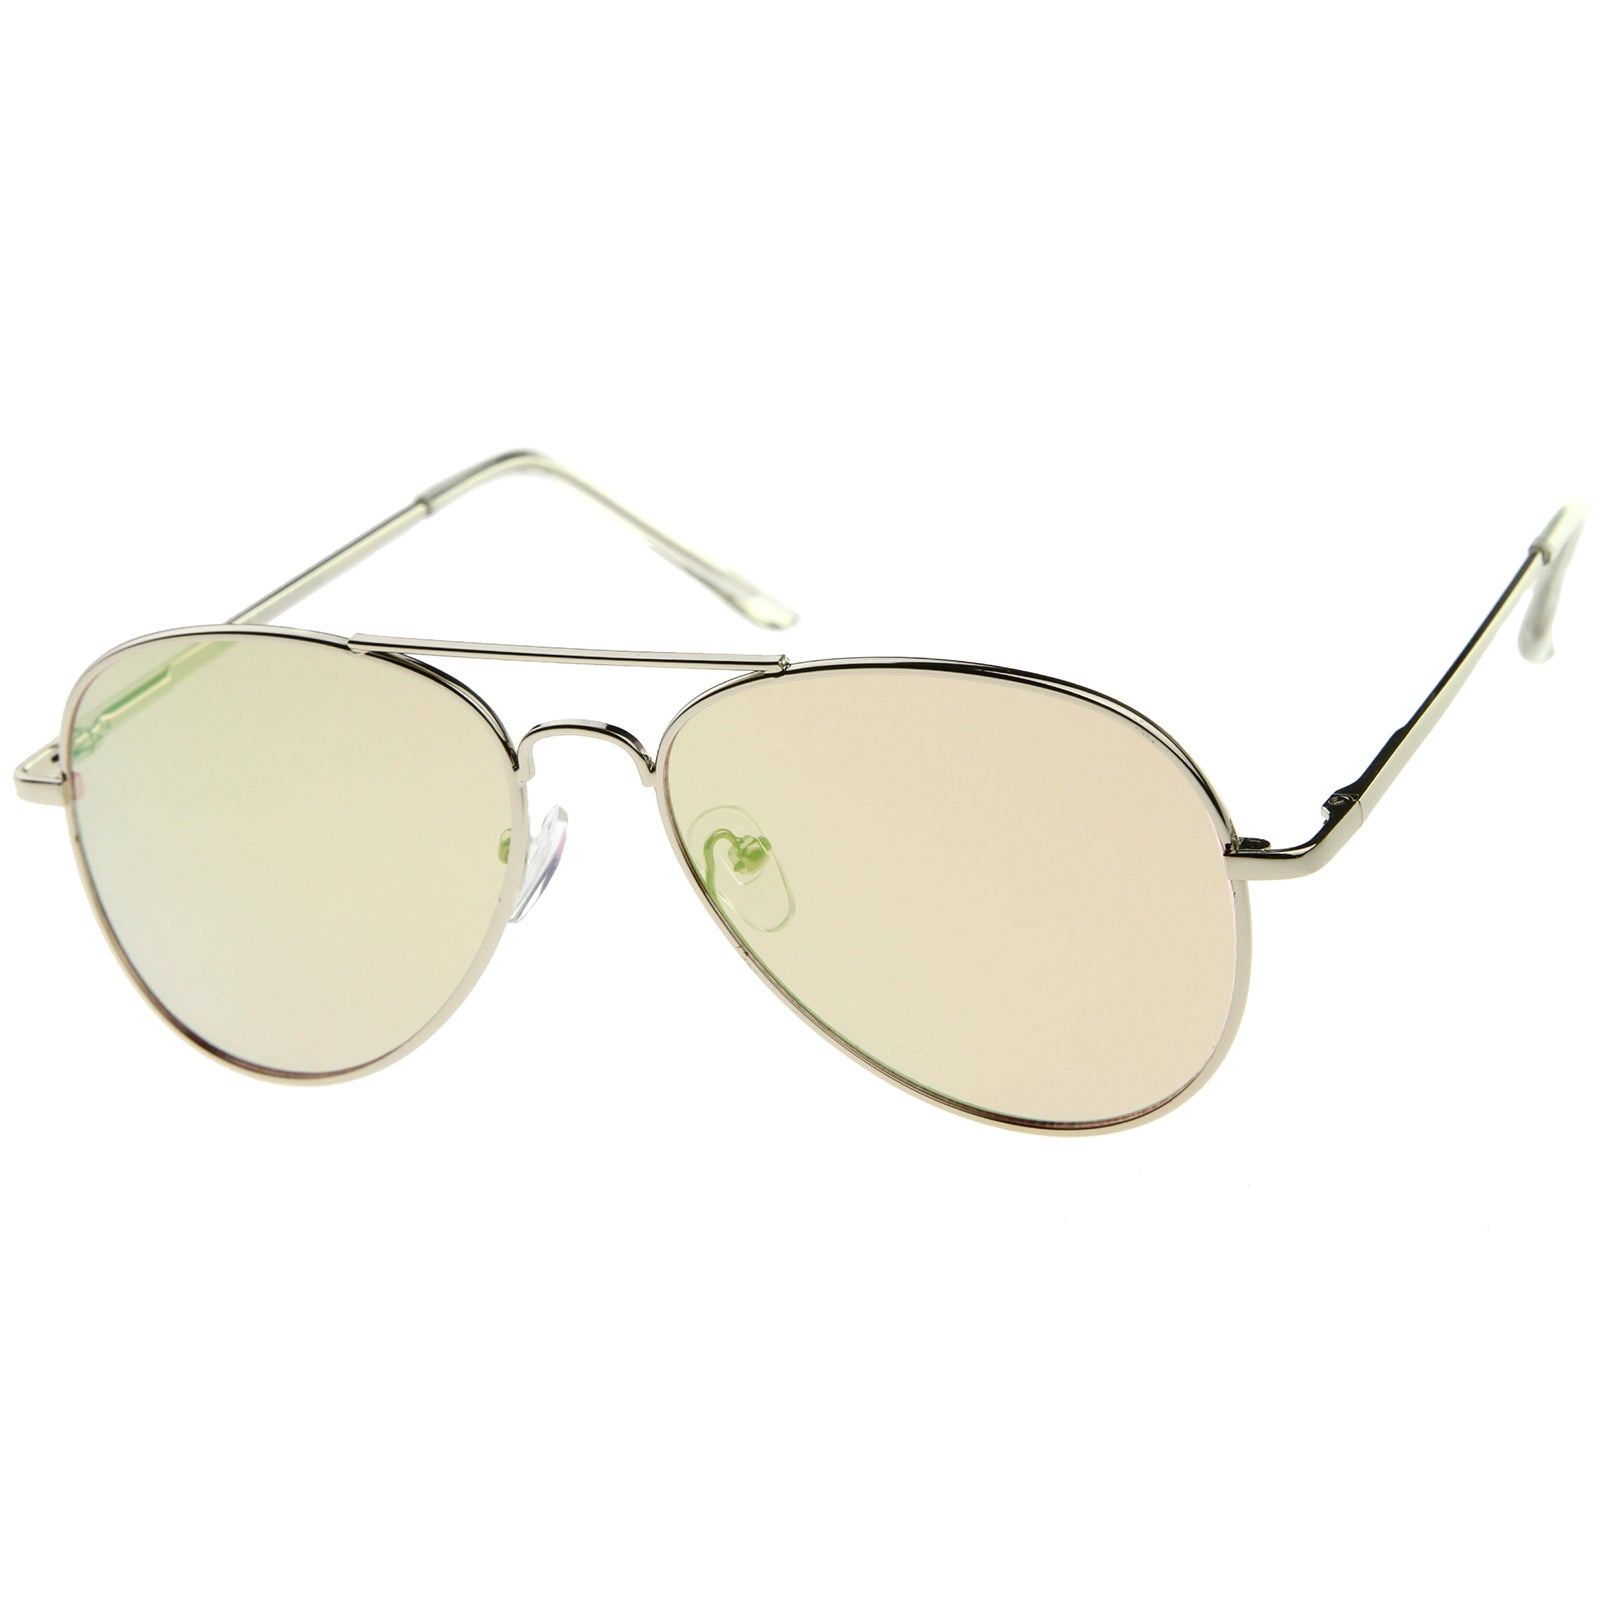 Small Full Metal Color Mirror Teardrop Flat Lens Aviator Sunglasses 56mm - sunglass.la - 2